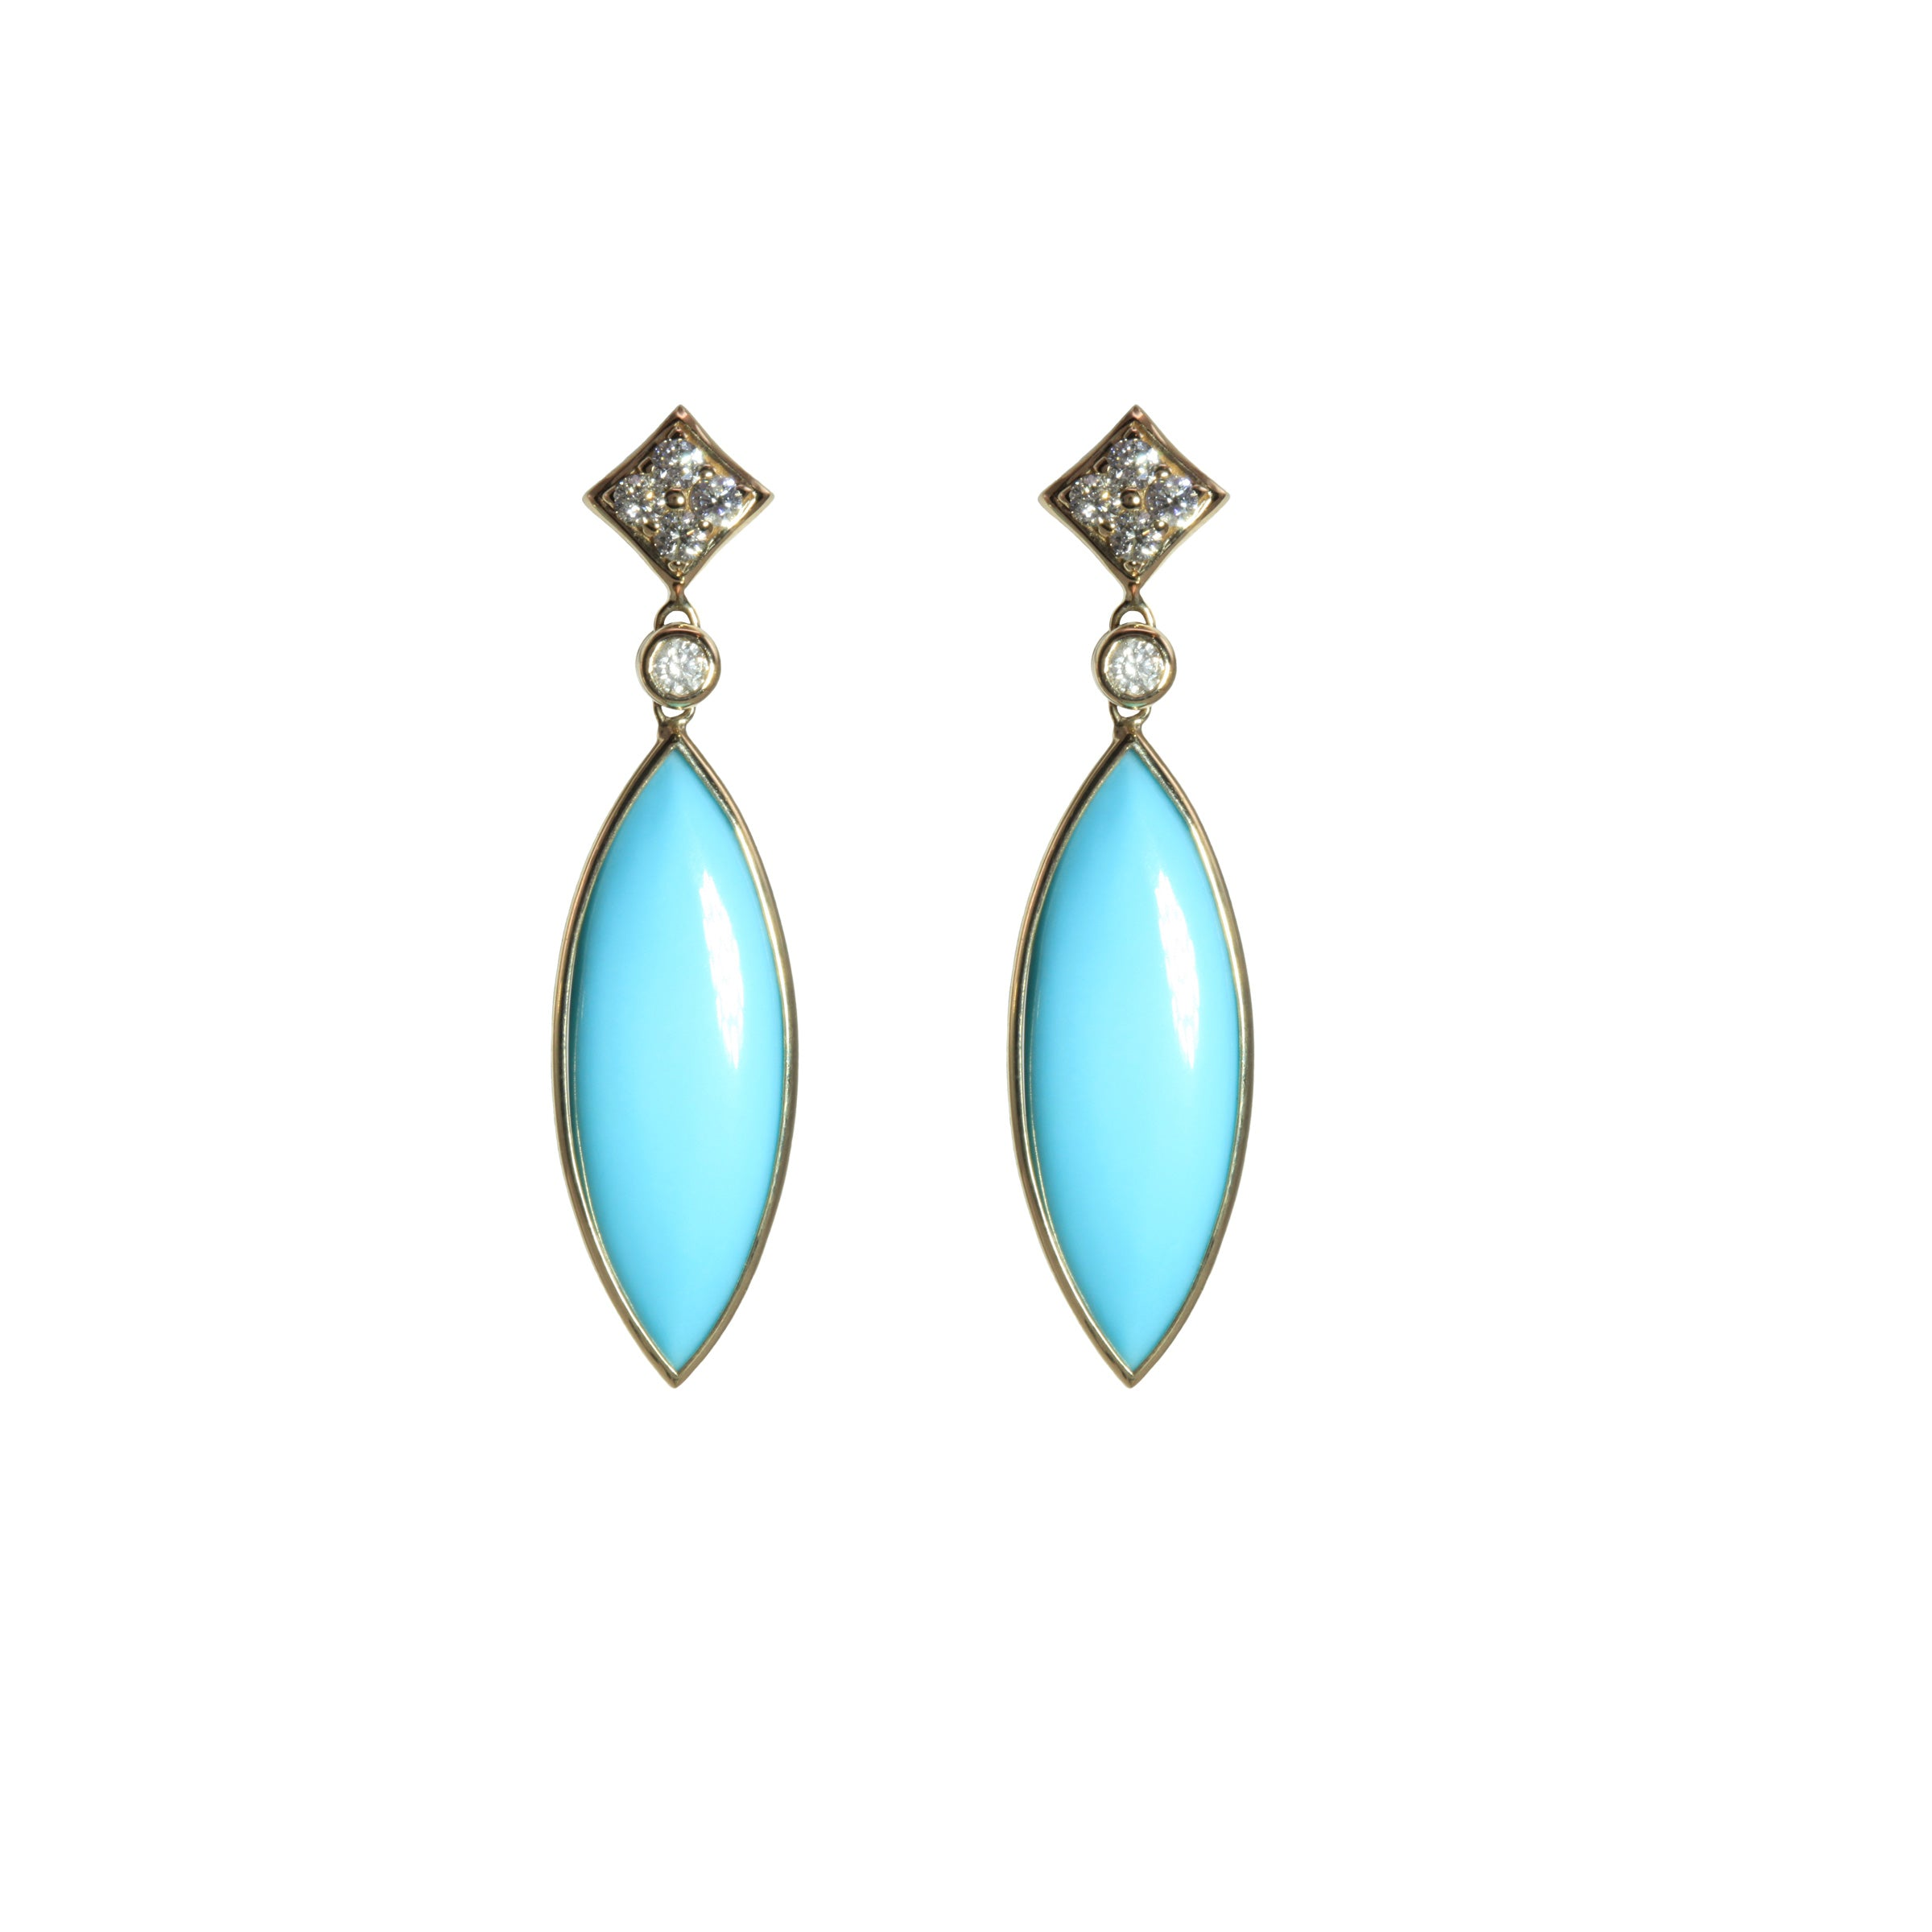 Marquise Shape Turquoise Dangle Earrings, 14K Yellow Gold